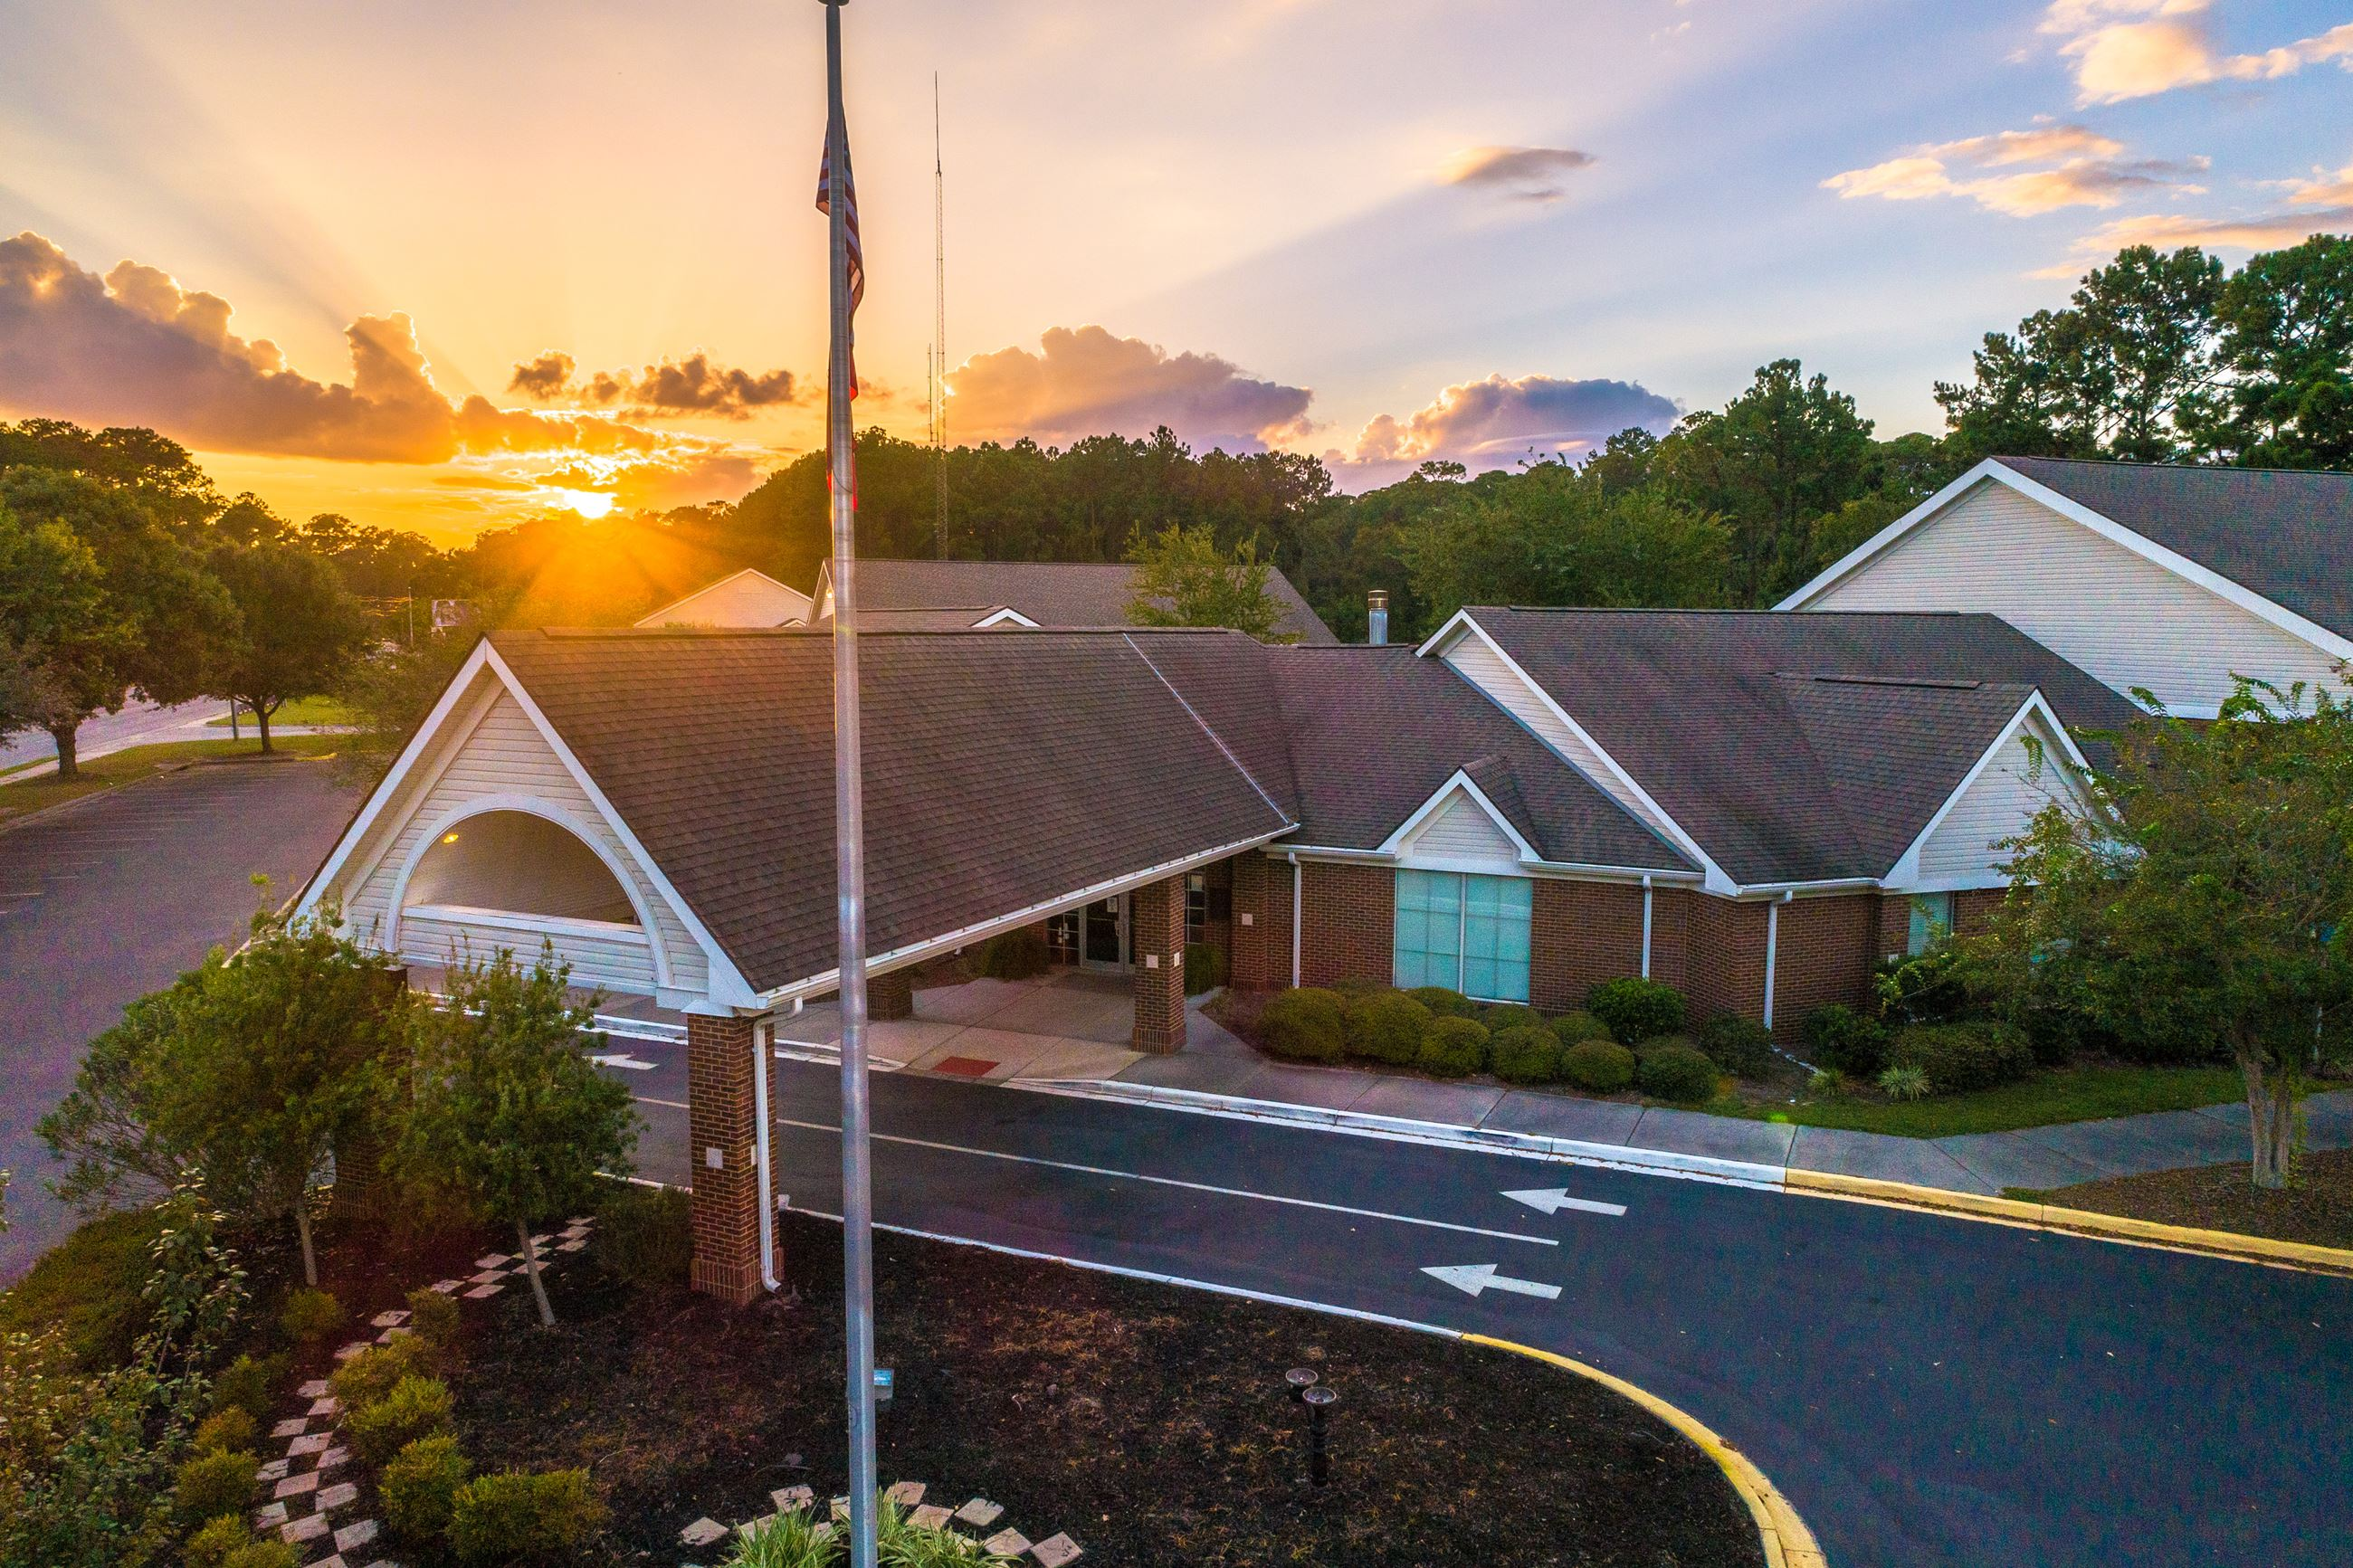 An image of the VLPRA senior center building with the sunset in the background.